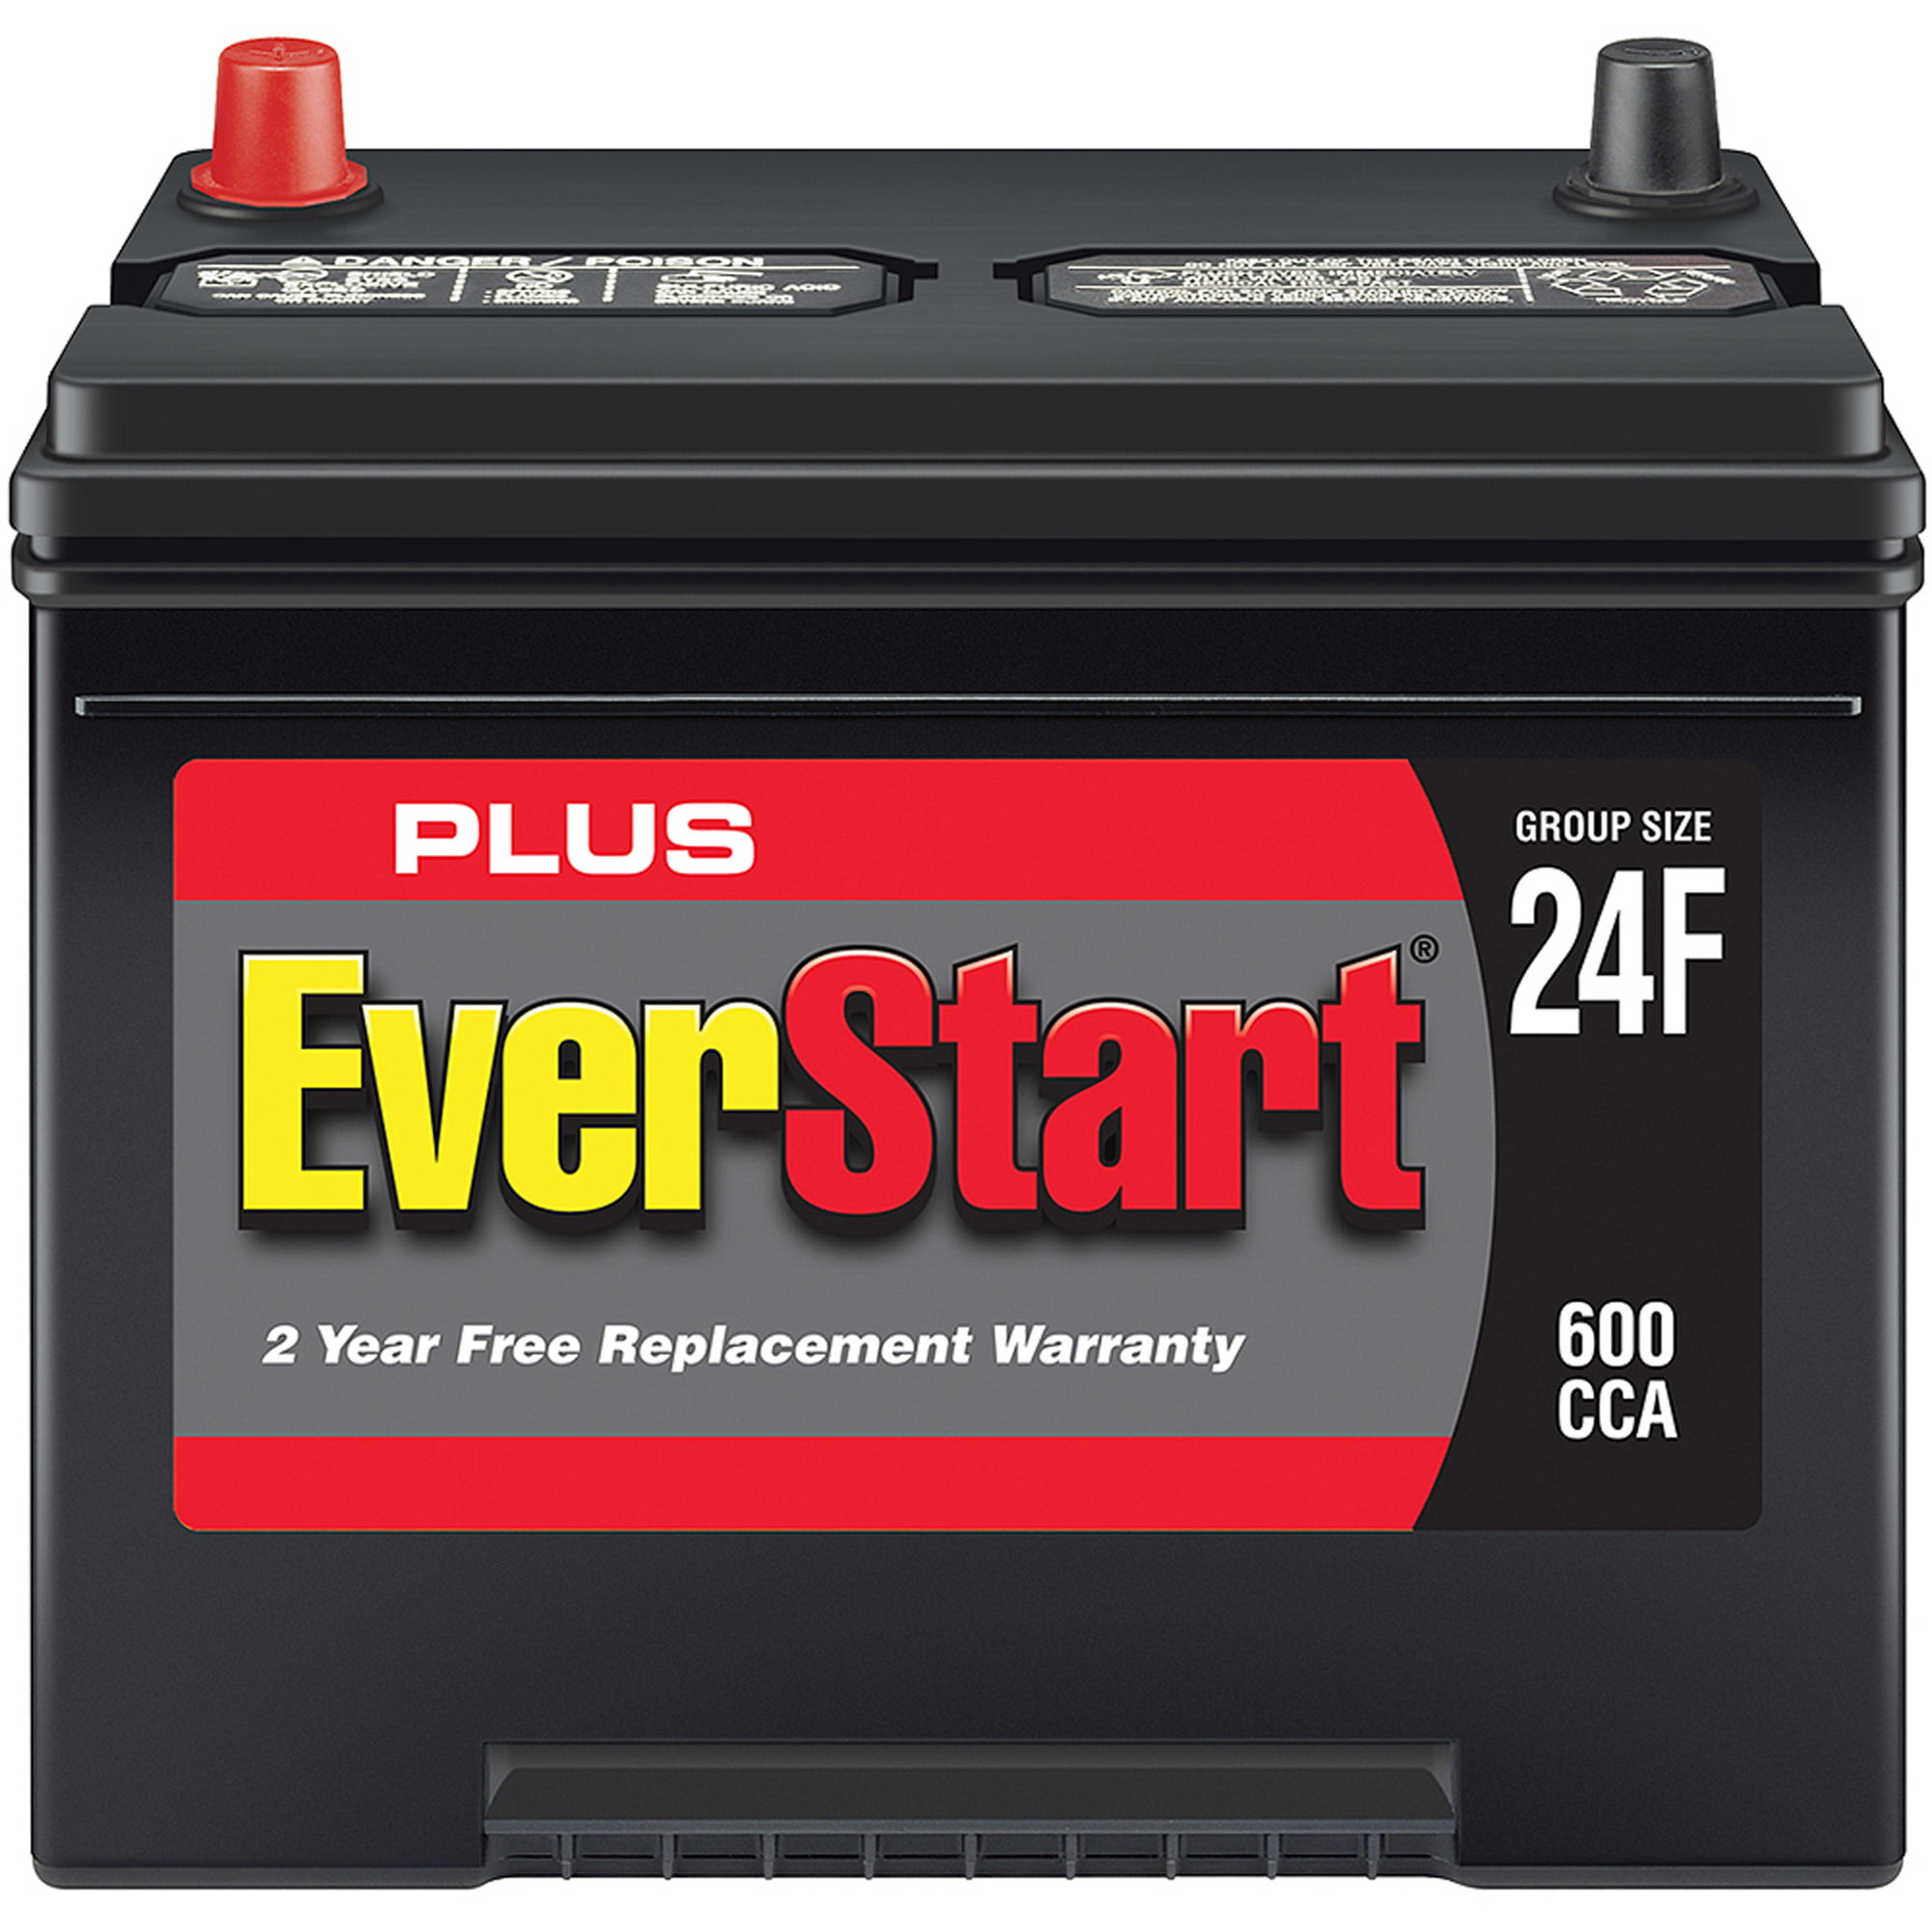 Everstart plus lead acid automotive battery group size 24f 3 walmart com